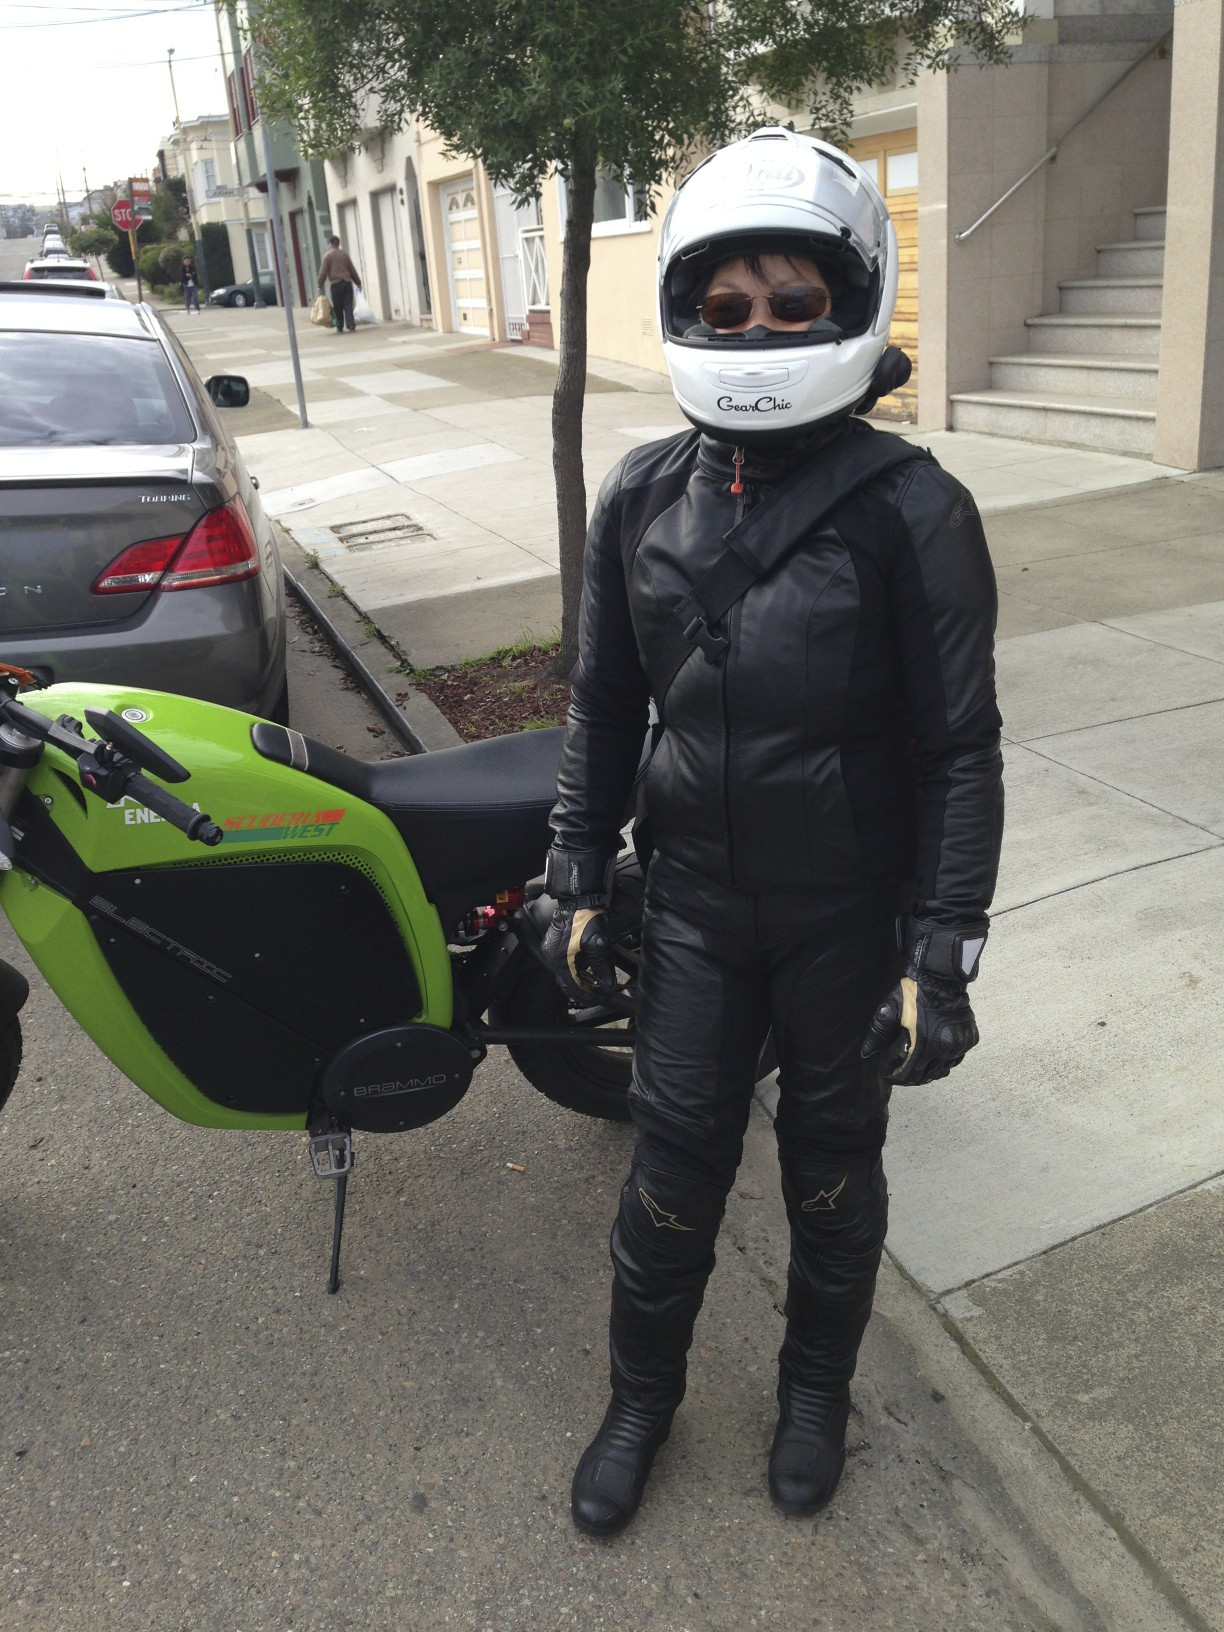 Alpinestars Jacket Leather >> Alpinestars Vika Leather Pants Review by GearChic.com — GearChic